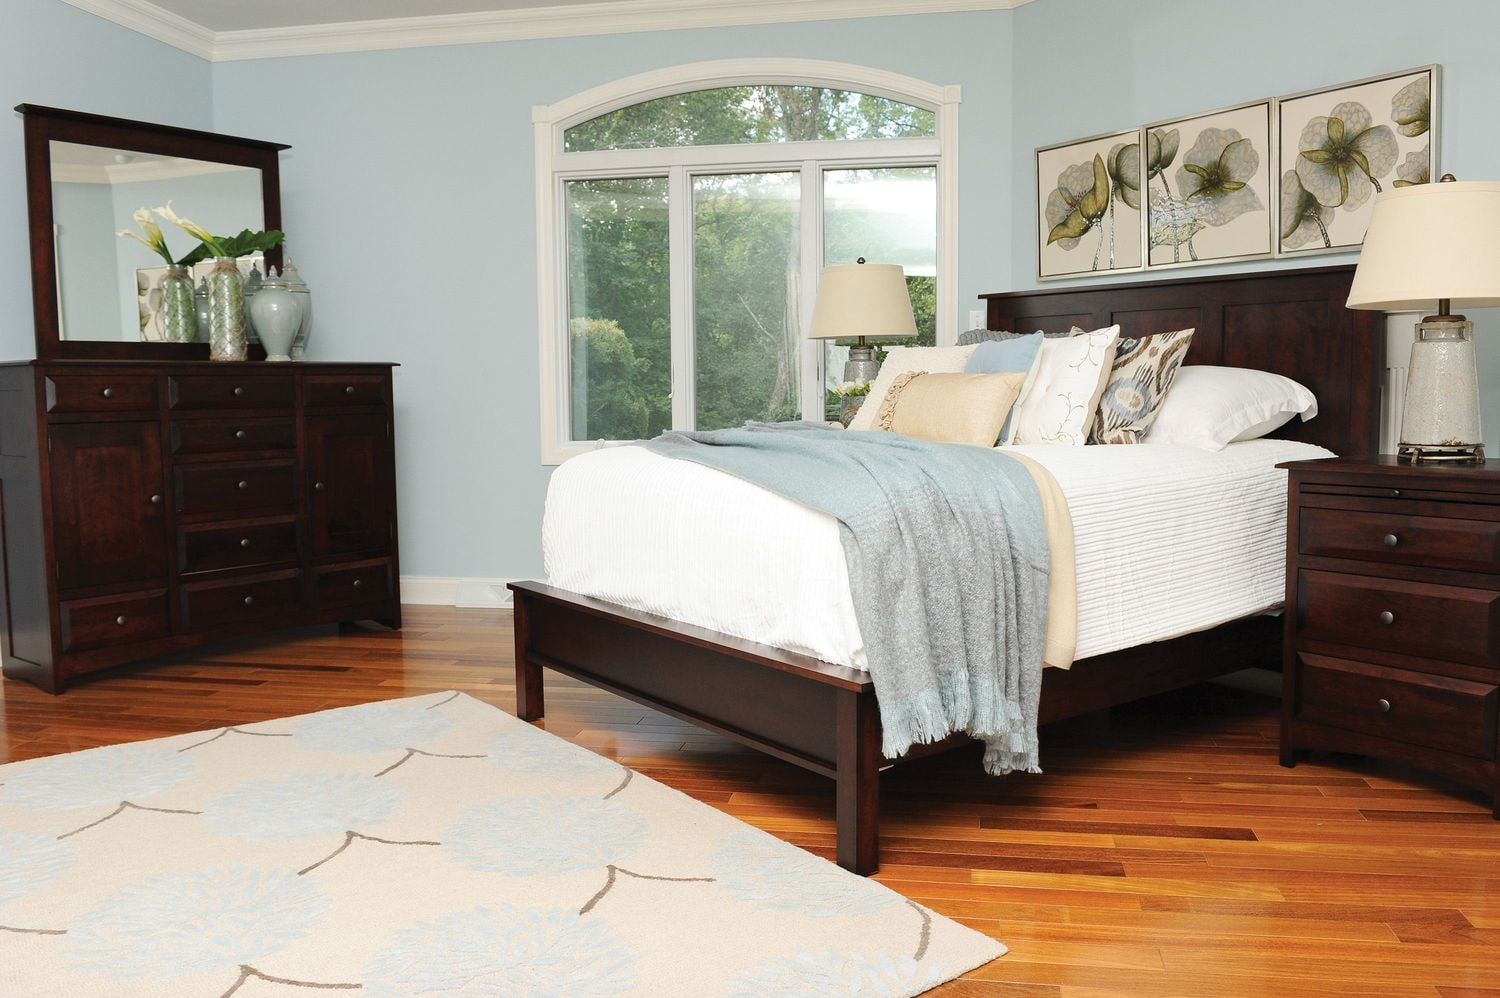 bedroom levin furniture 12080 | 461487 fit inside 320 320 composite to center center 320 320 background color white